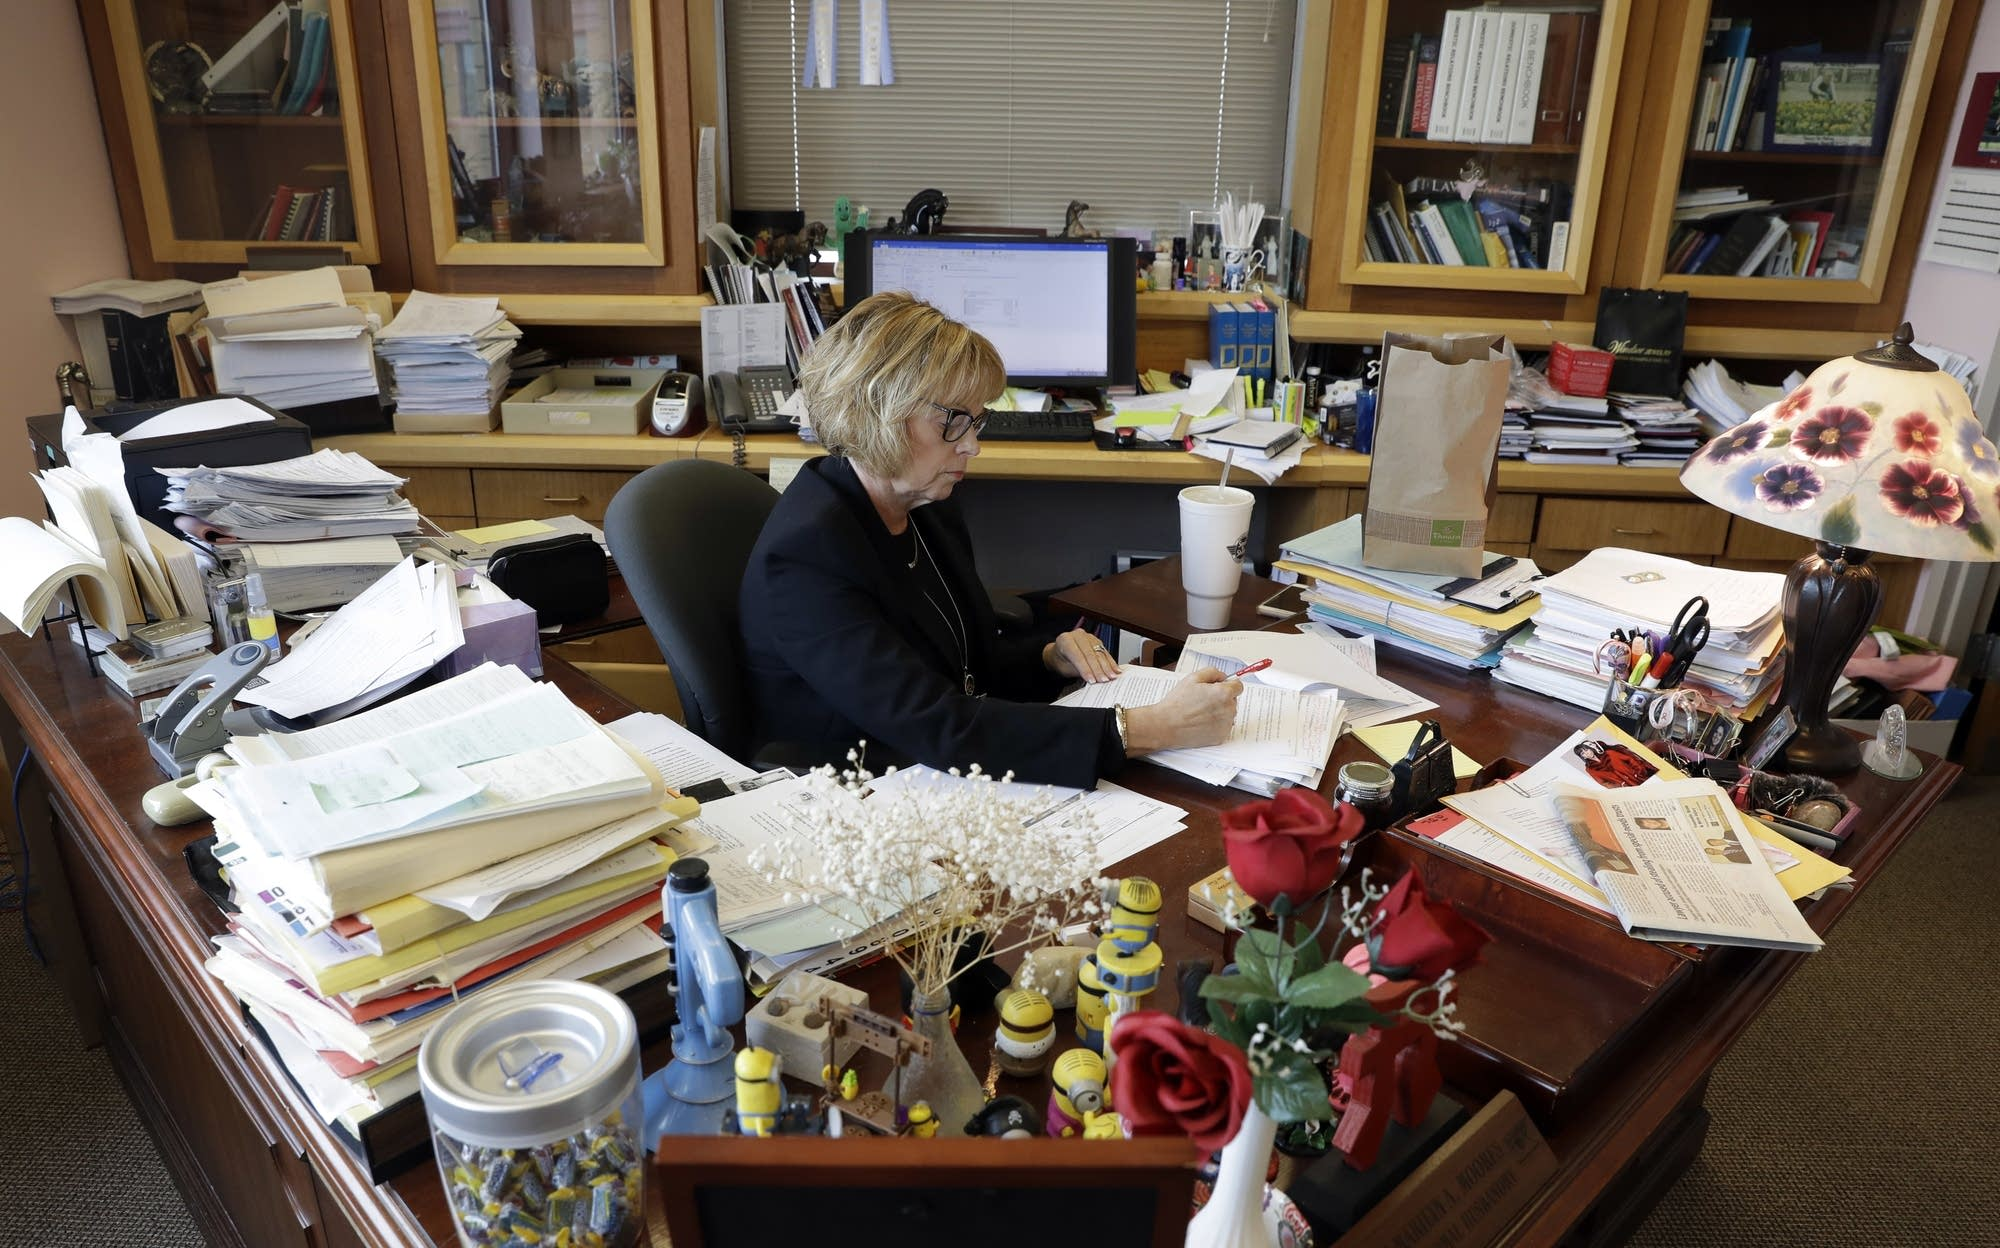 Judge Marilyn Moores works in her office.